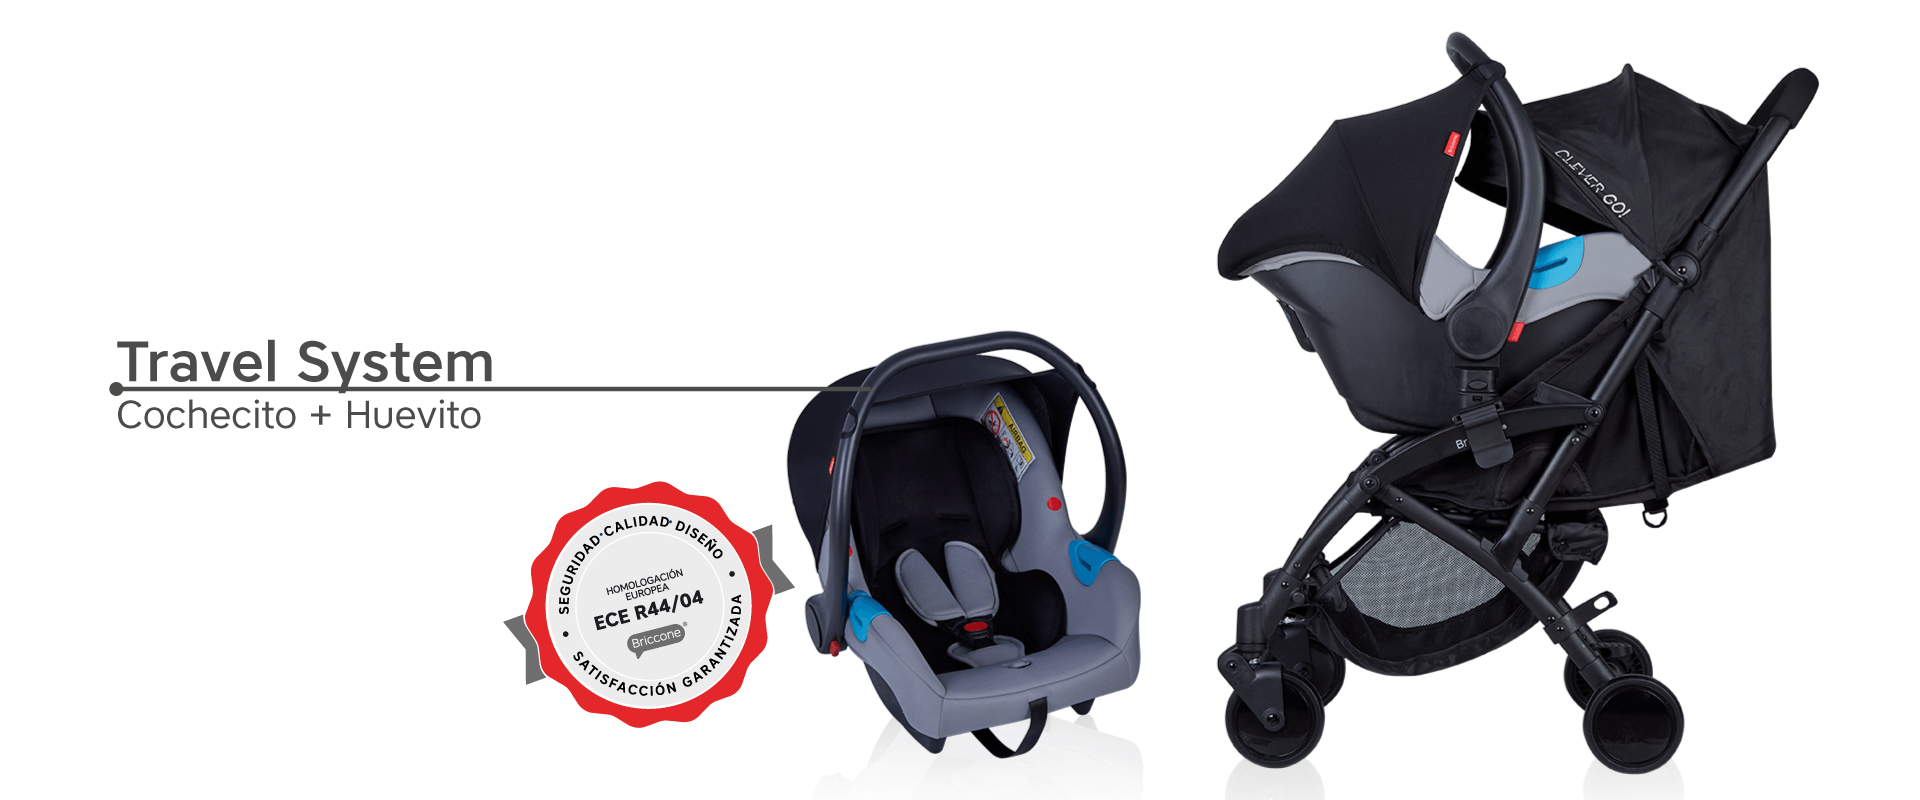 Travel System Clever Go!